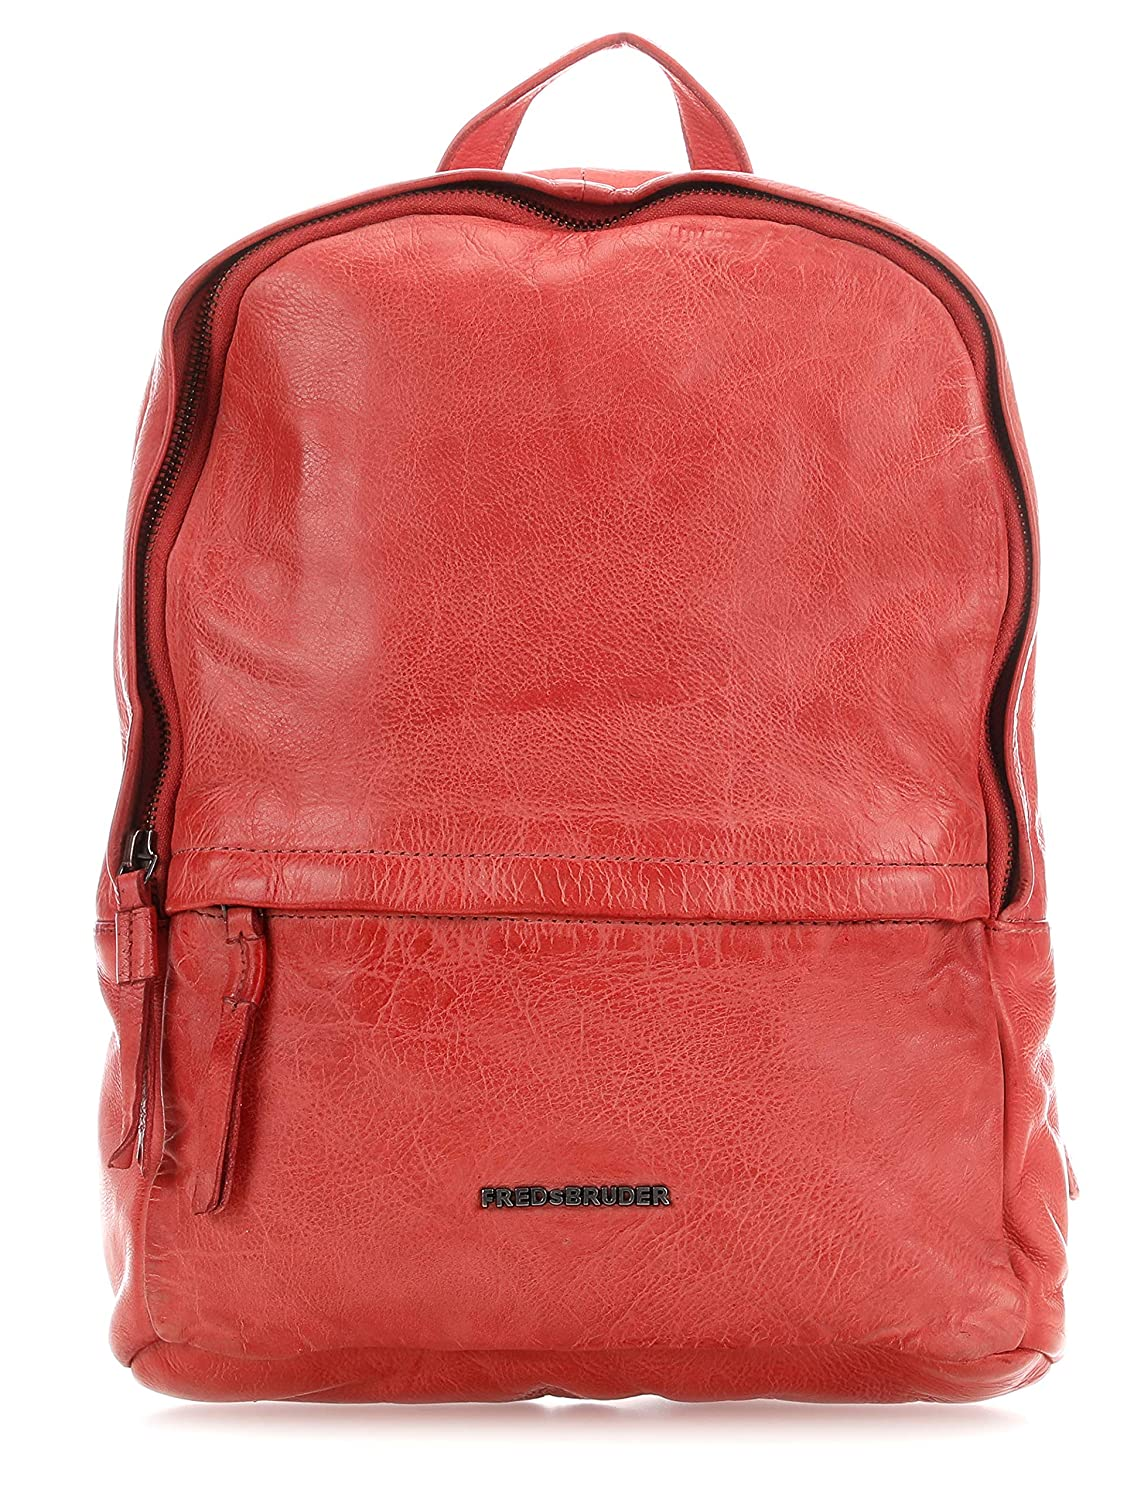 FredsBruder Knapsack Backpack coral  Amazon.co.uk  Clothing e13d48bdb532f